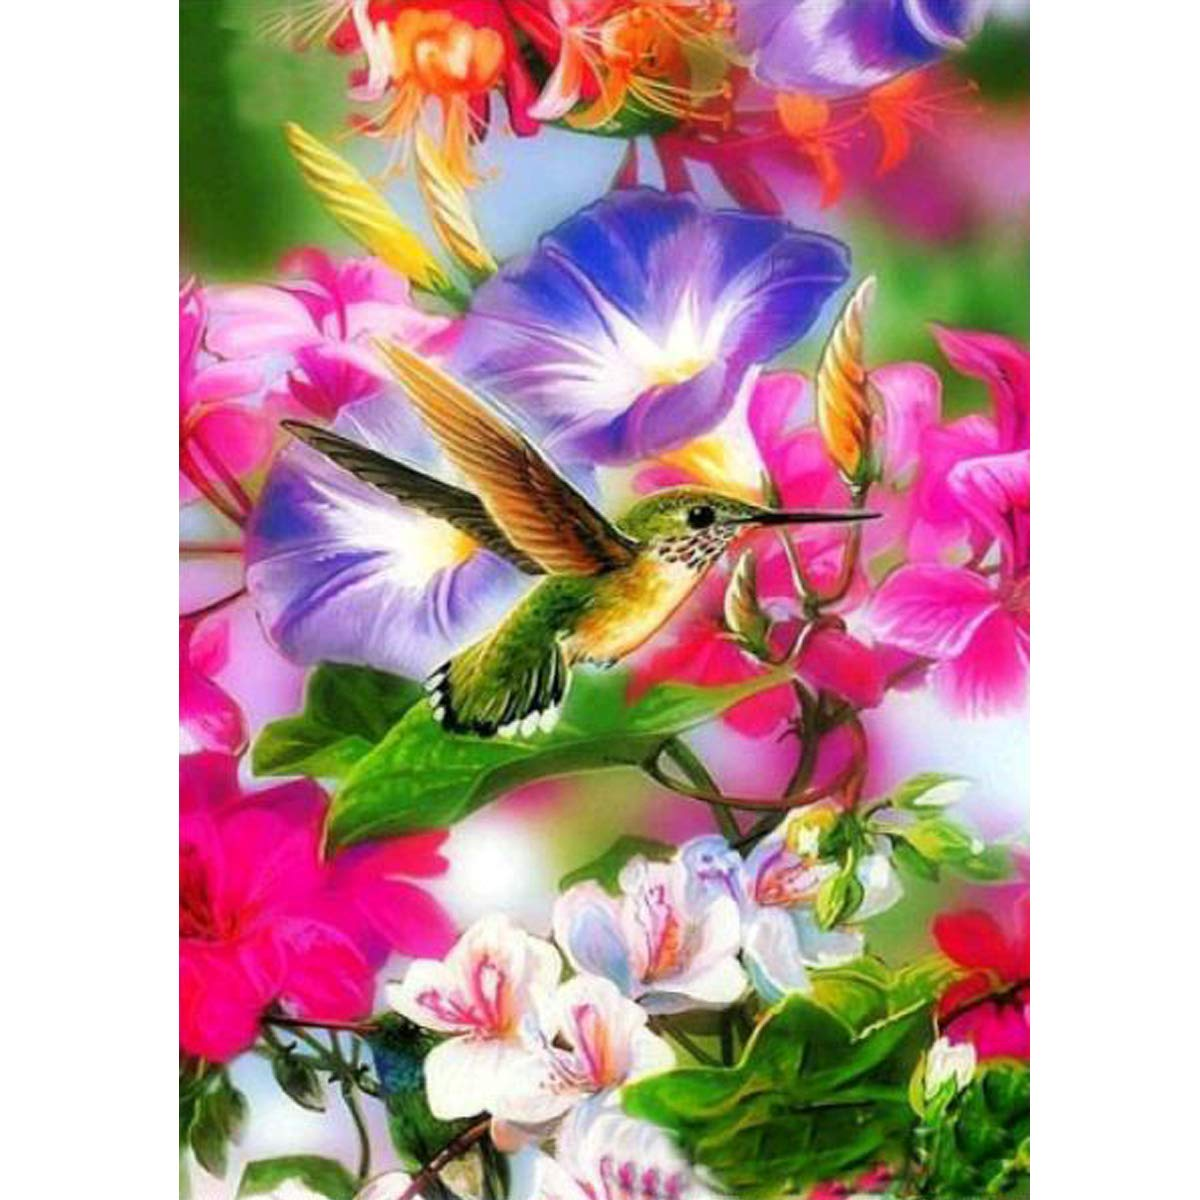 5D Diamond Painting Full Round Drill Kits for Adults Pasted Embroidery Cross Stitch Arts Craft for Home Wall Decor Hummingbird 12x16in MXJSUA